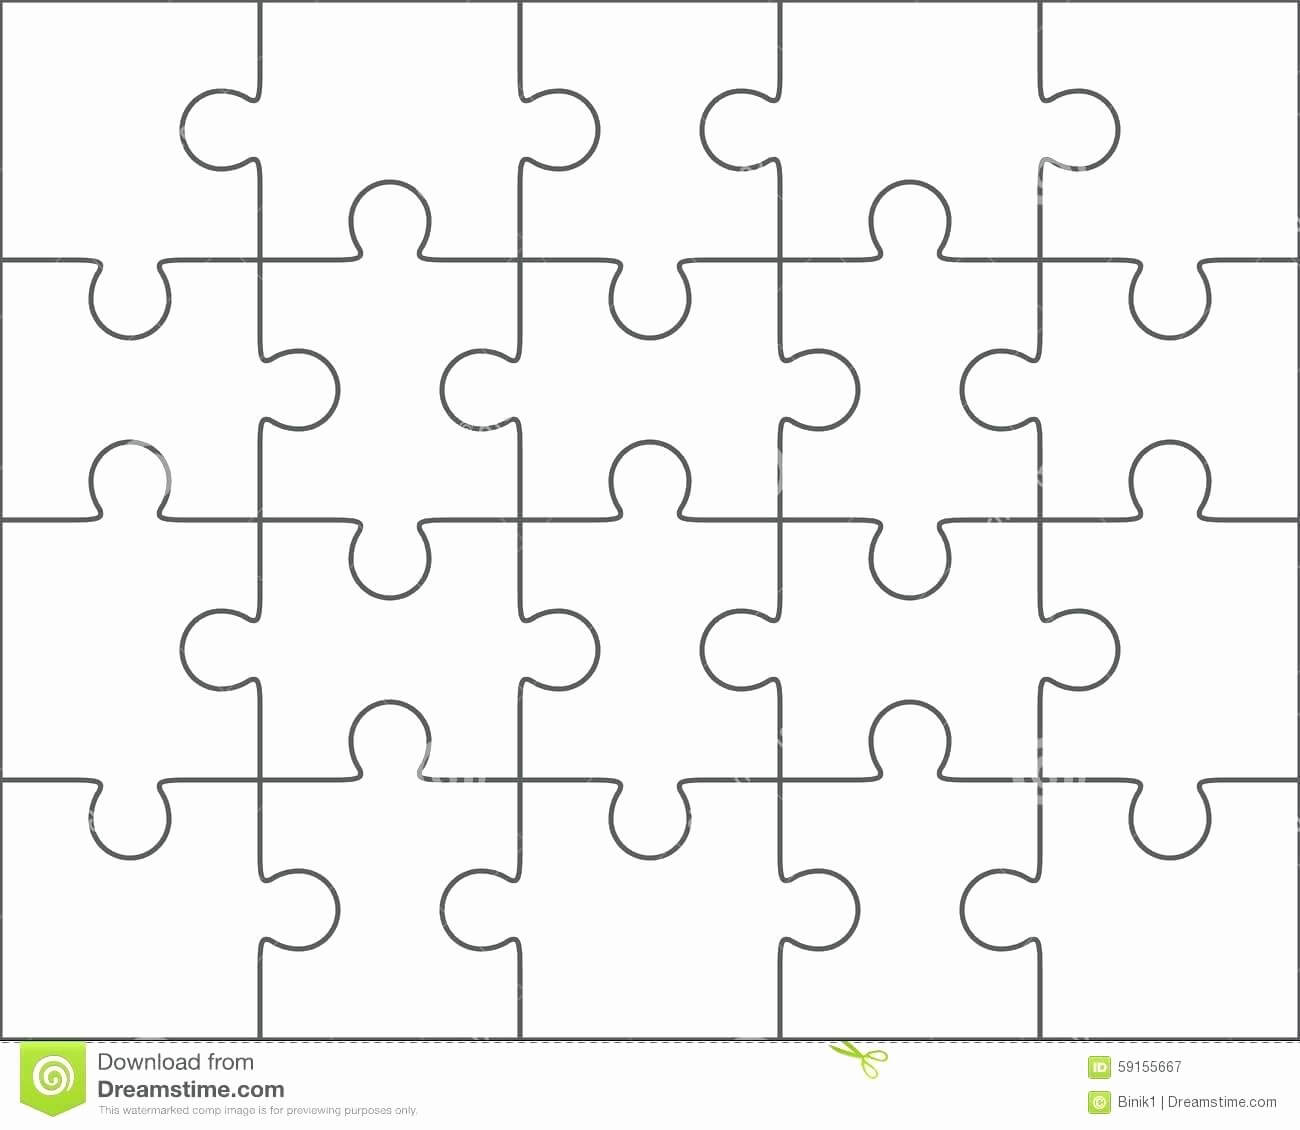 030 Puzzle Pieces Template For Word Best Of Piece Intended Intended For Jigsaw Puzzle Template For Word